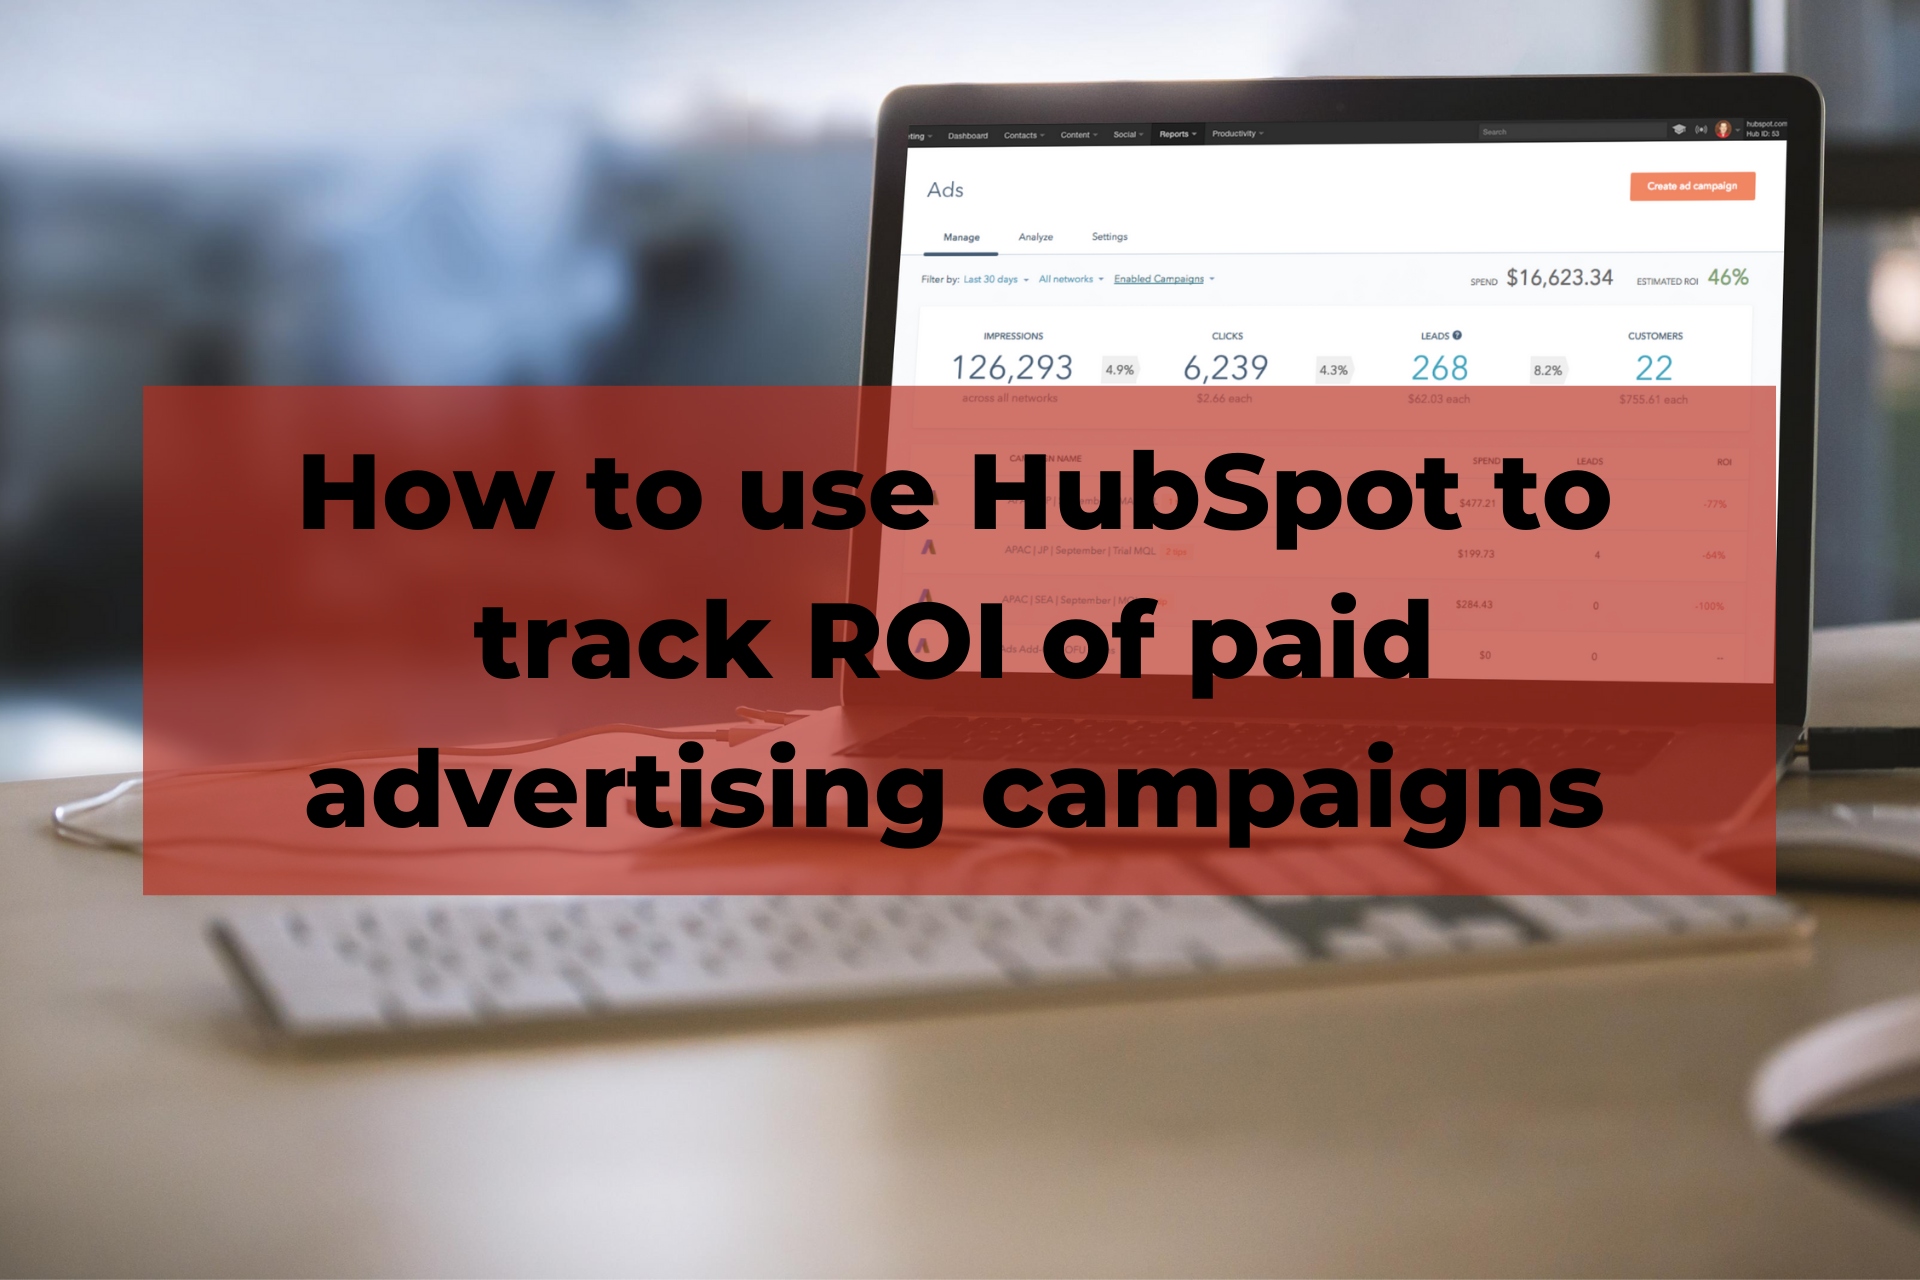 HubSpot to track ROI